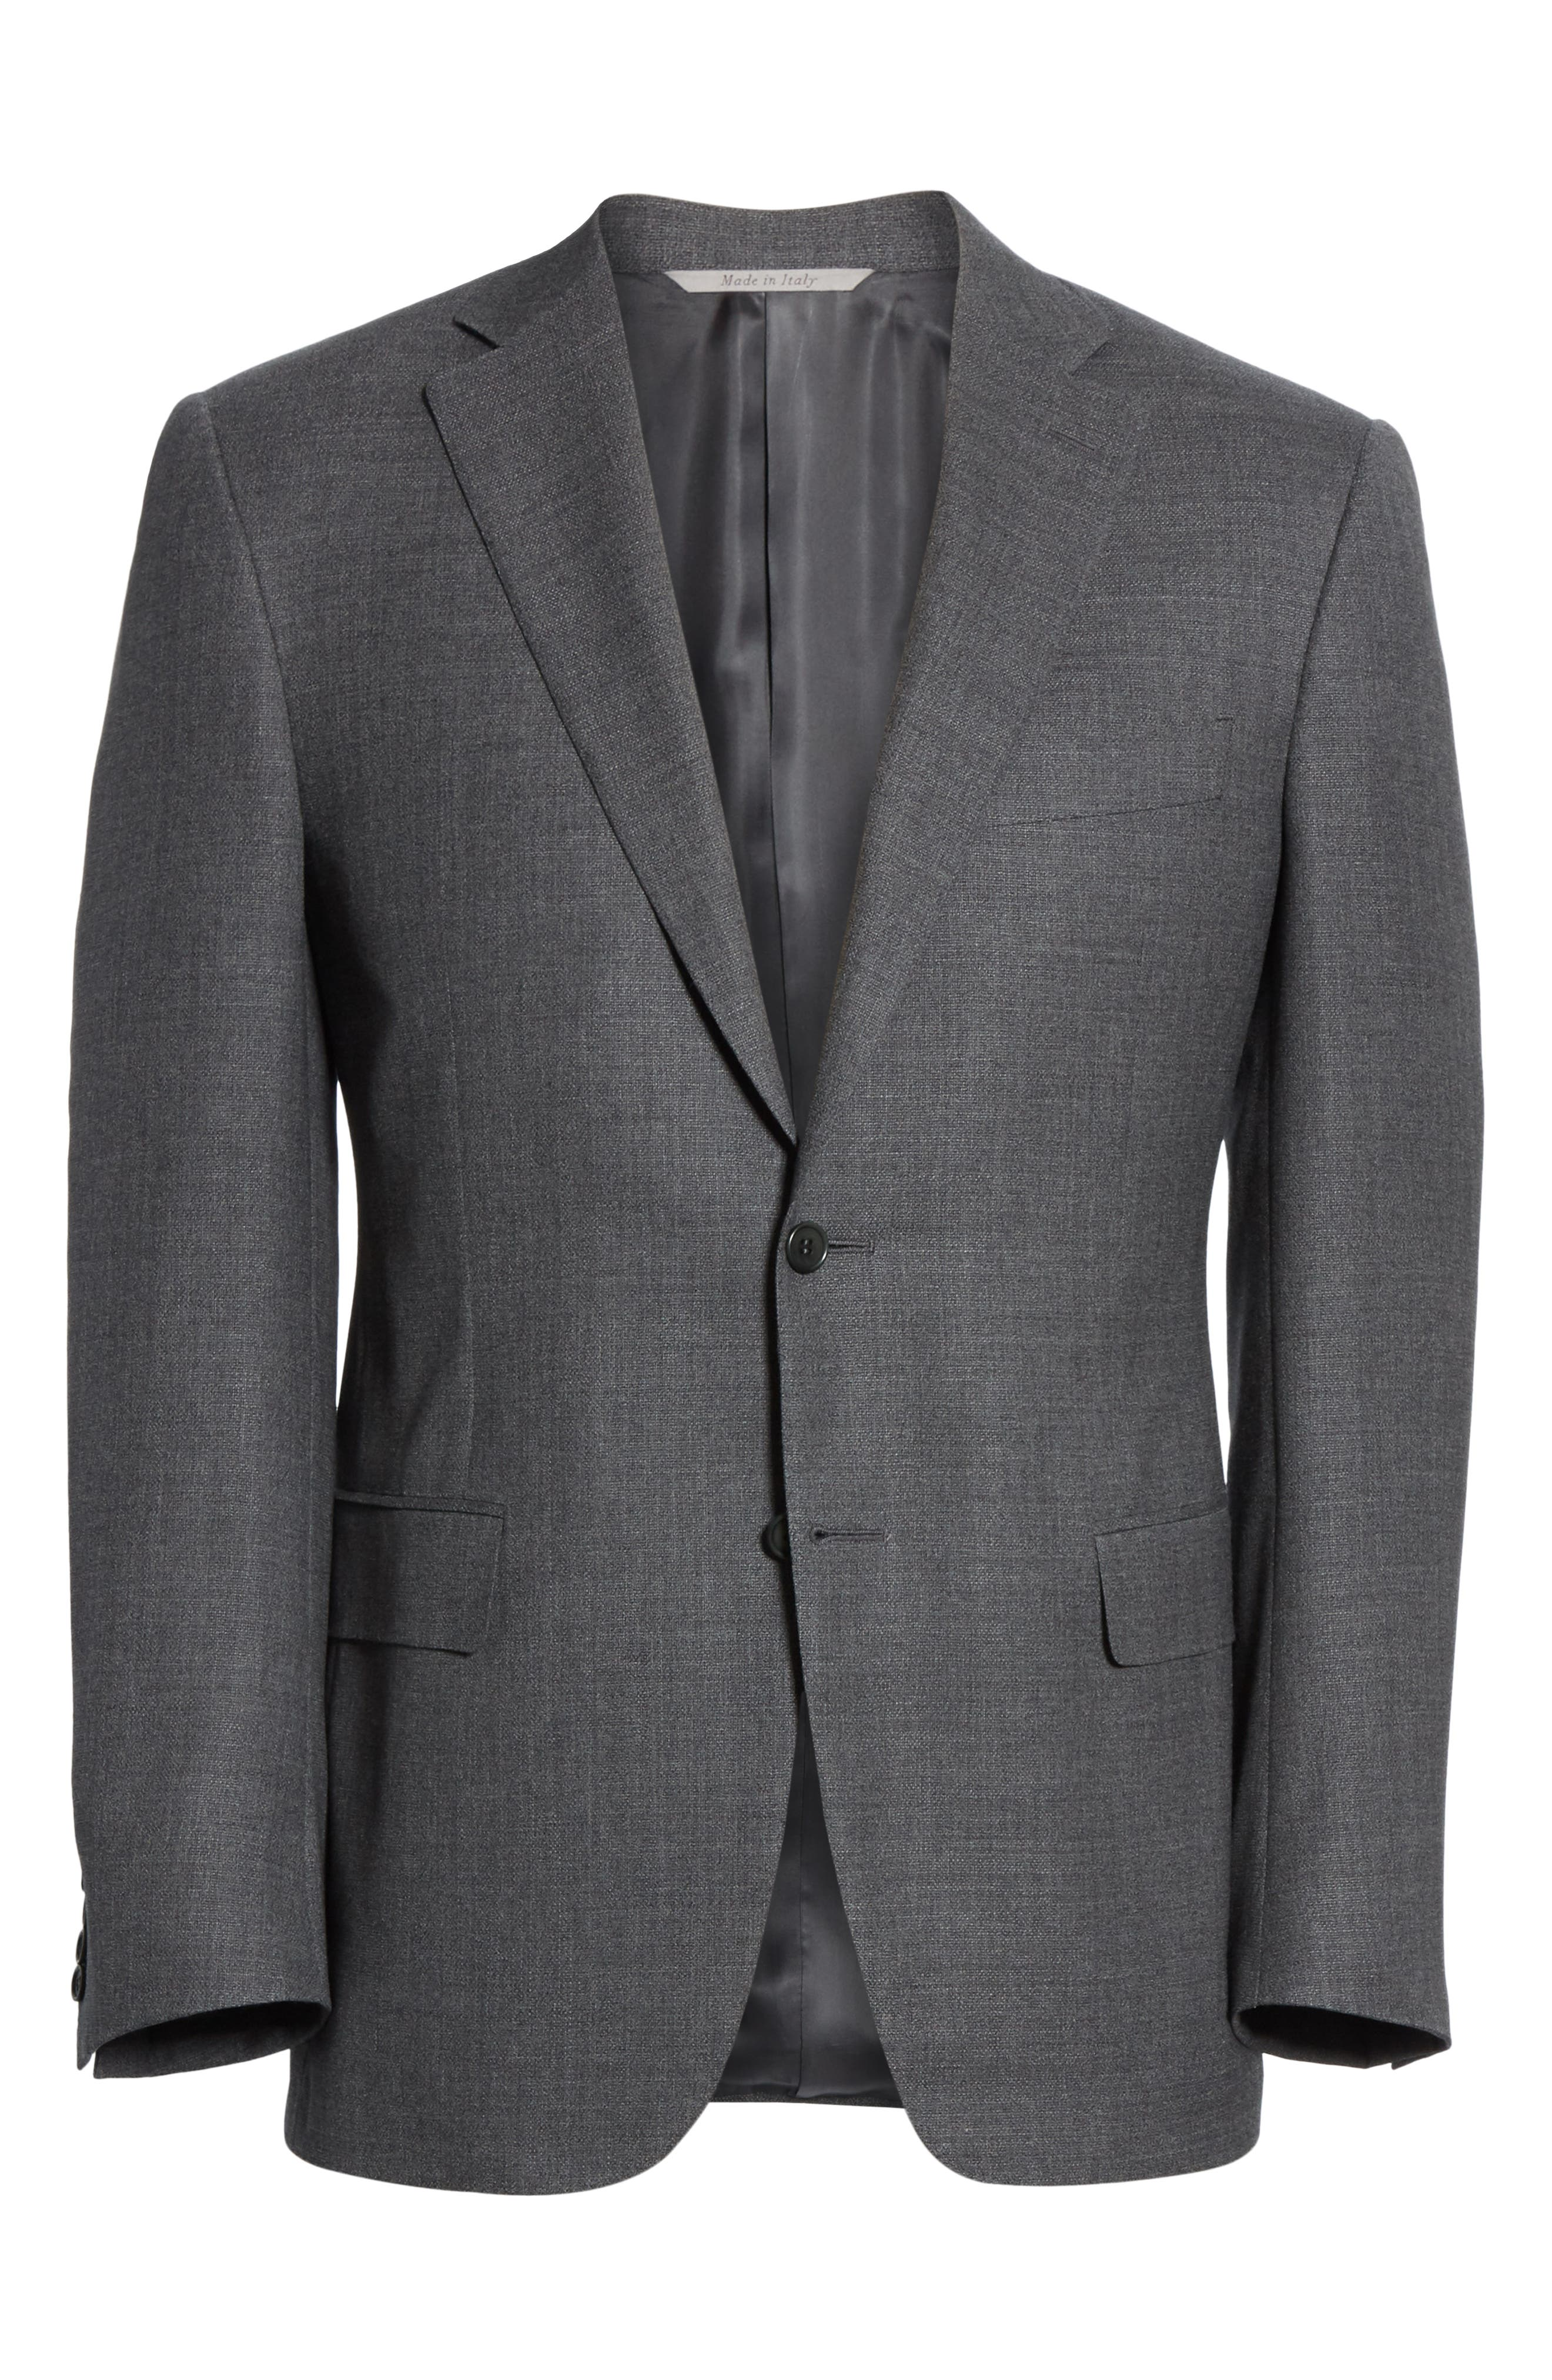 CANALI, Sienna Classic Fit Solid Wool Sport Coat, Alternate thumbnail 5, color, CHARCOAL